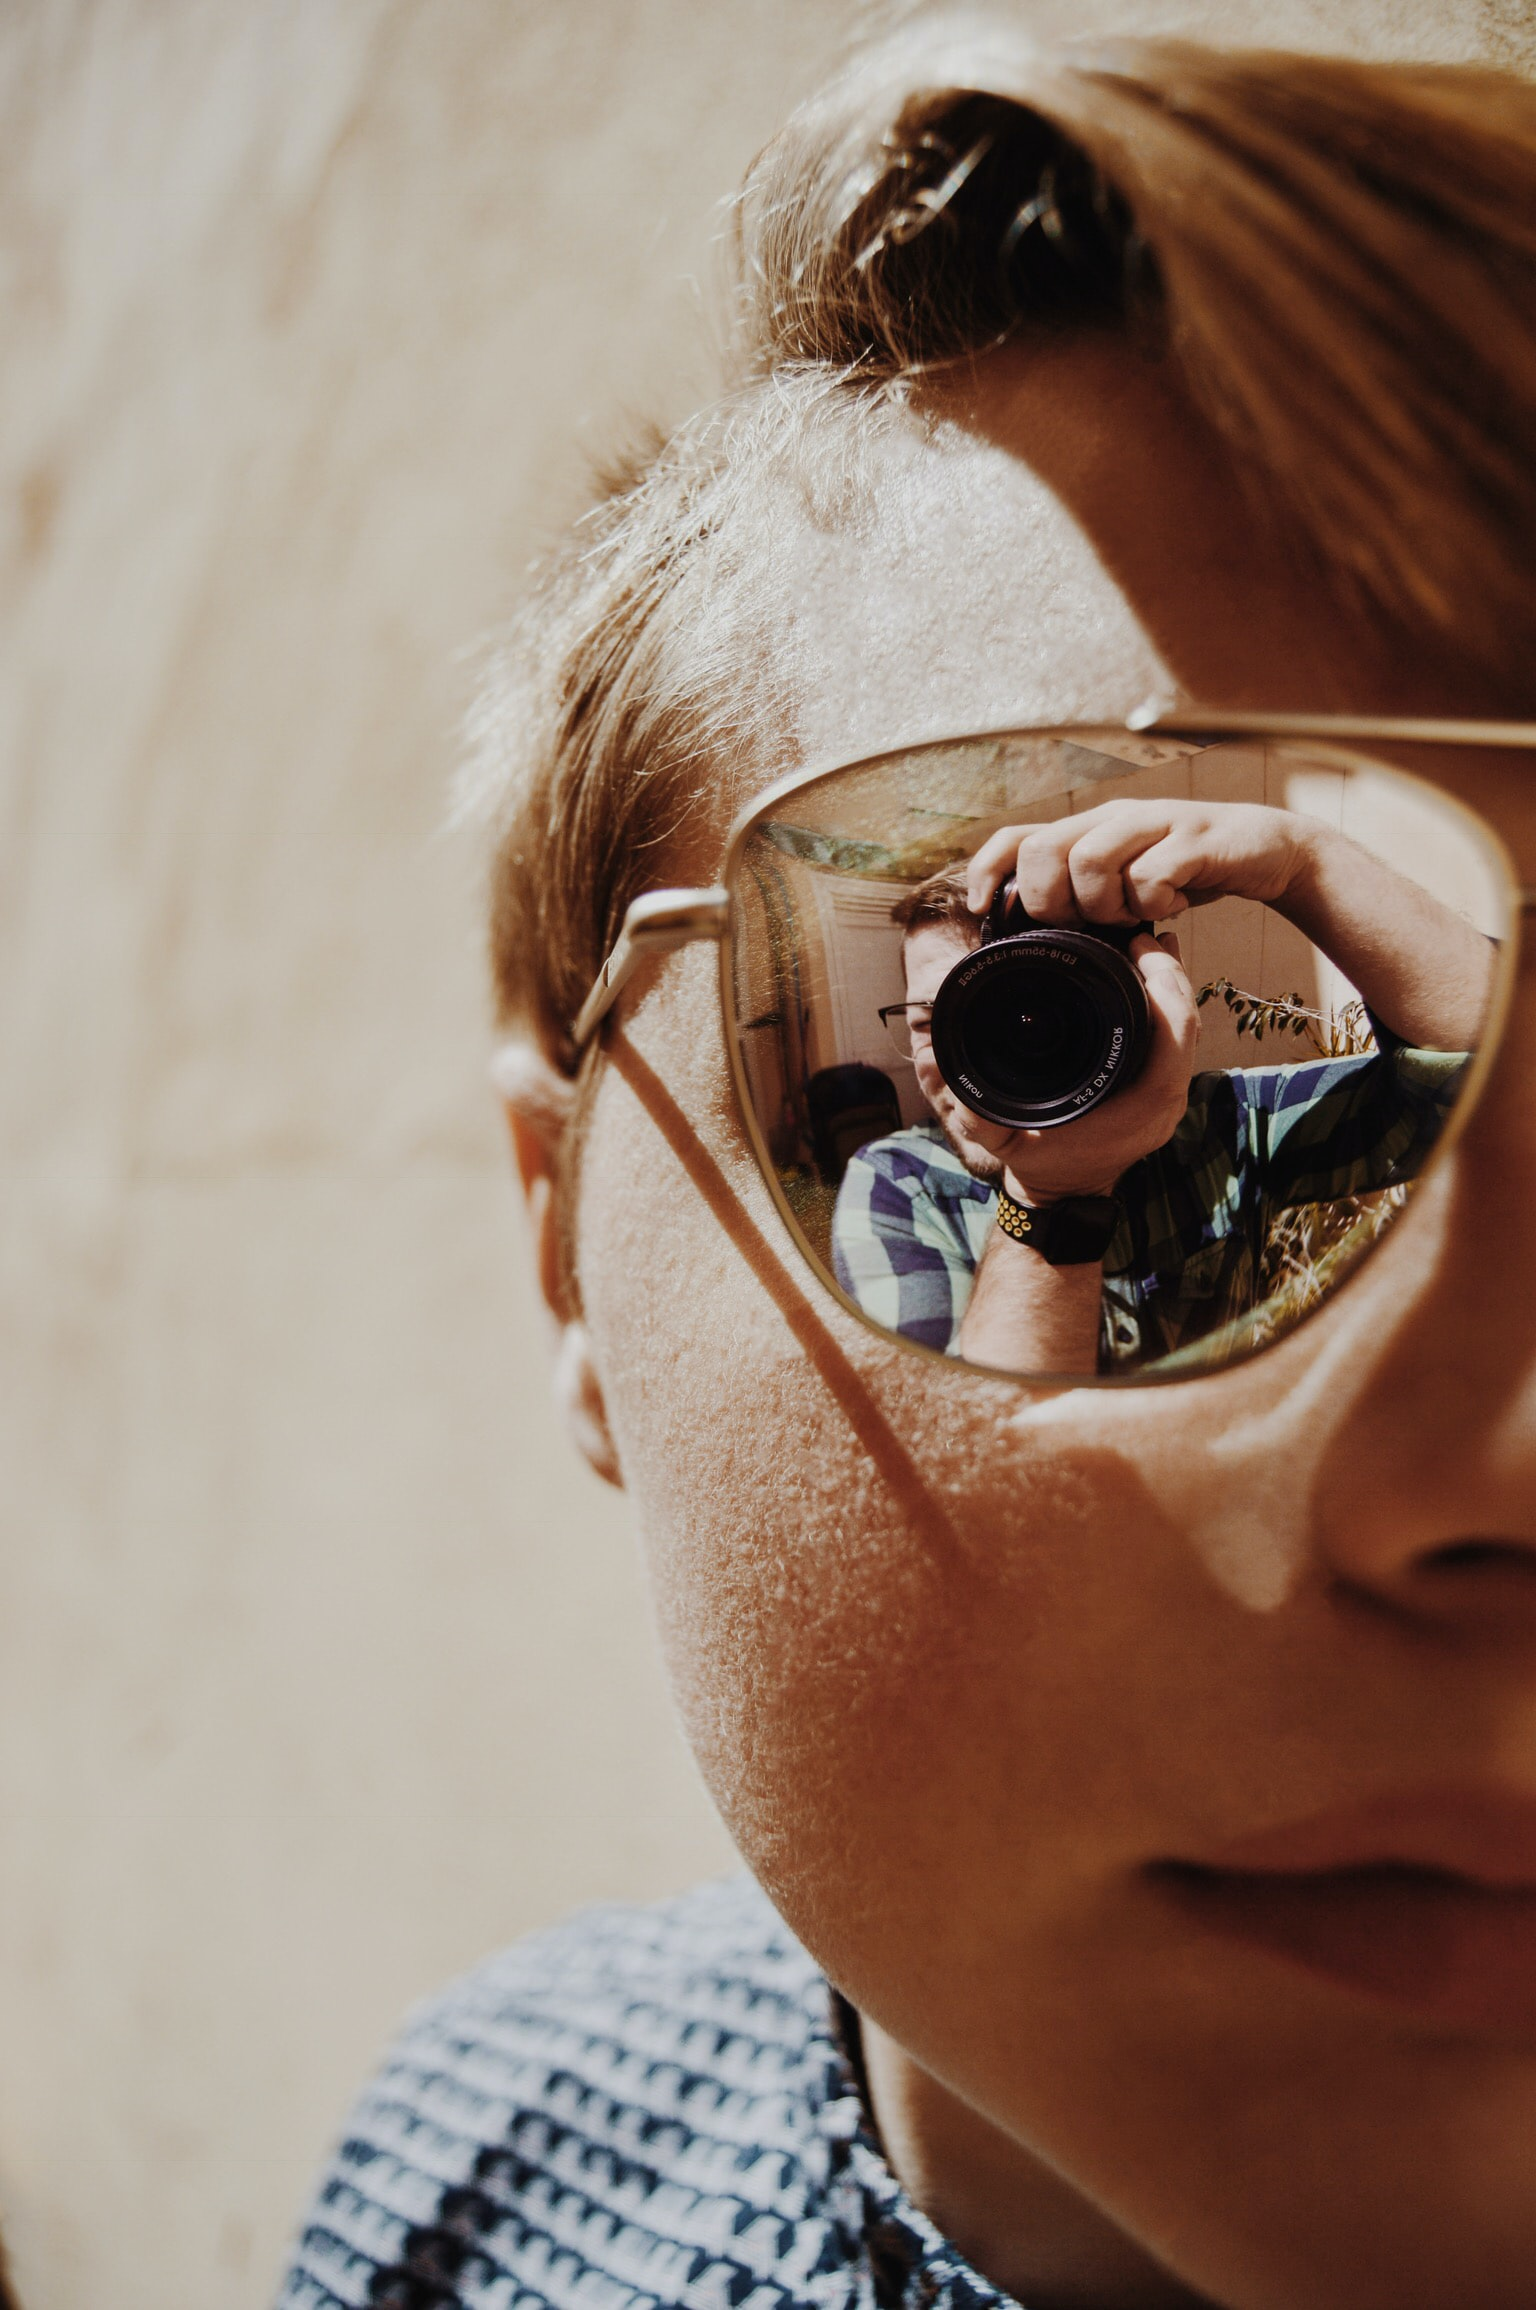 closeup photo of person wearing sunglasses